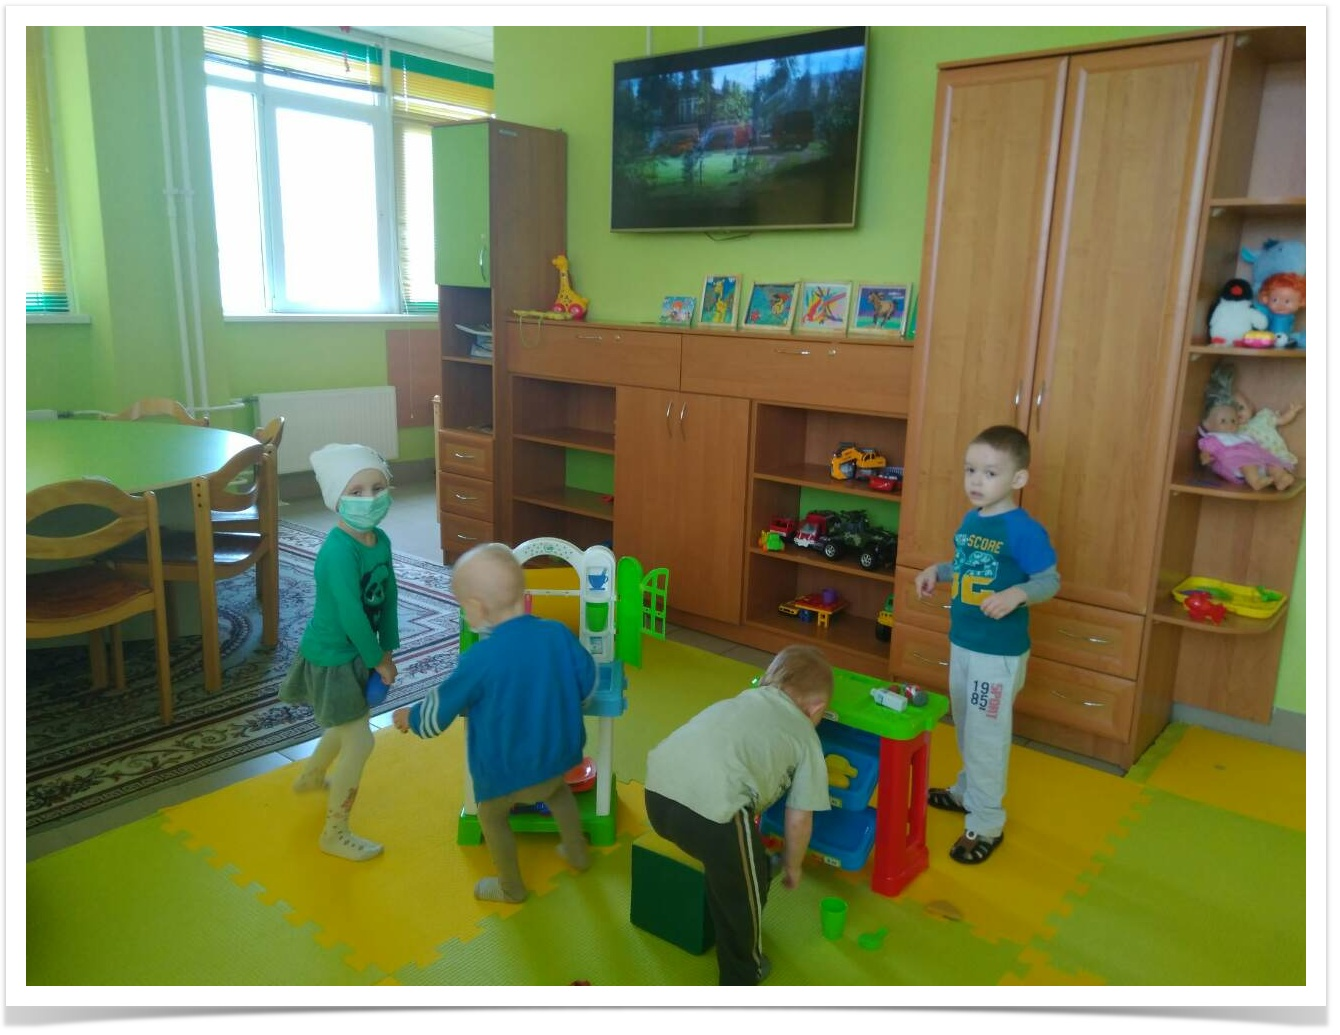 Every little bit helps stiltsoft for Activity room